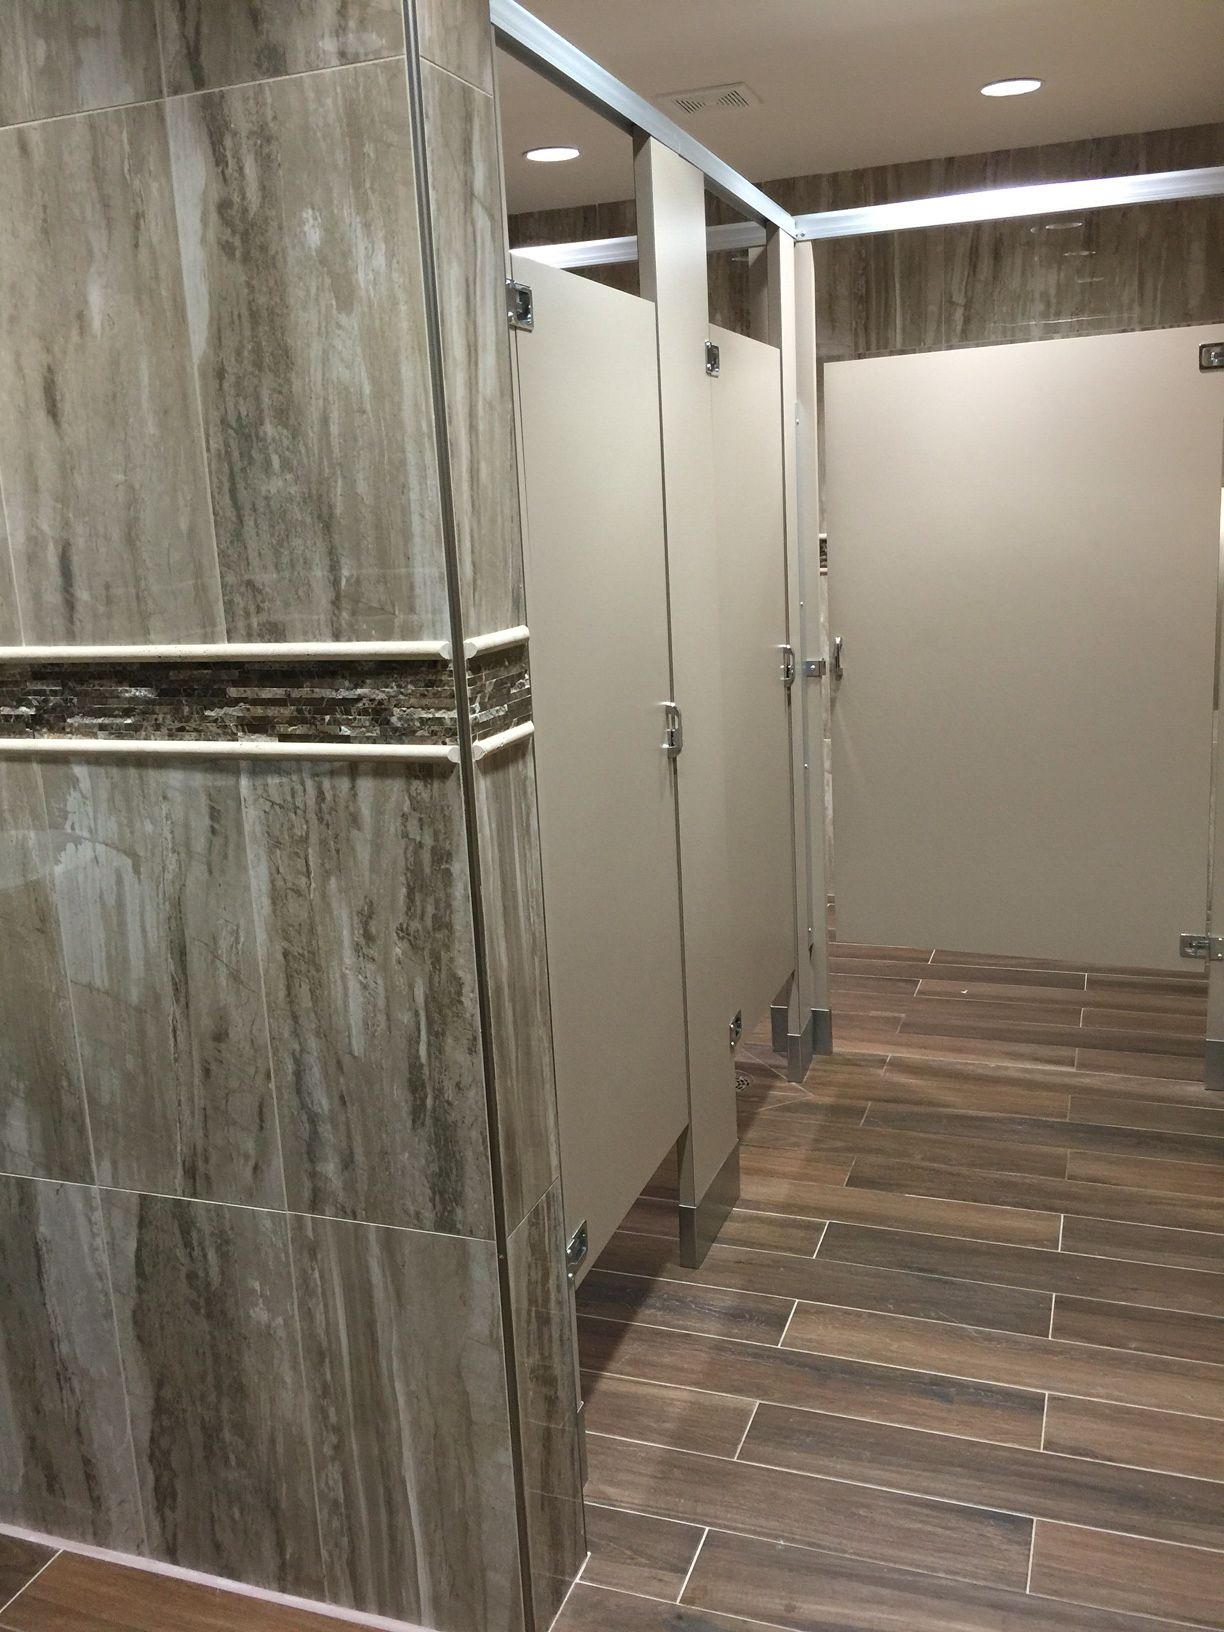 Daltile River Marble Rm91 Sandy Flats 12x24 Installed On Wall Saddle Brook Sd15 Walnut Creek 6x36 Floor Accent M725